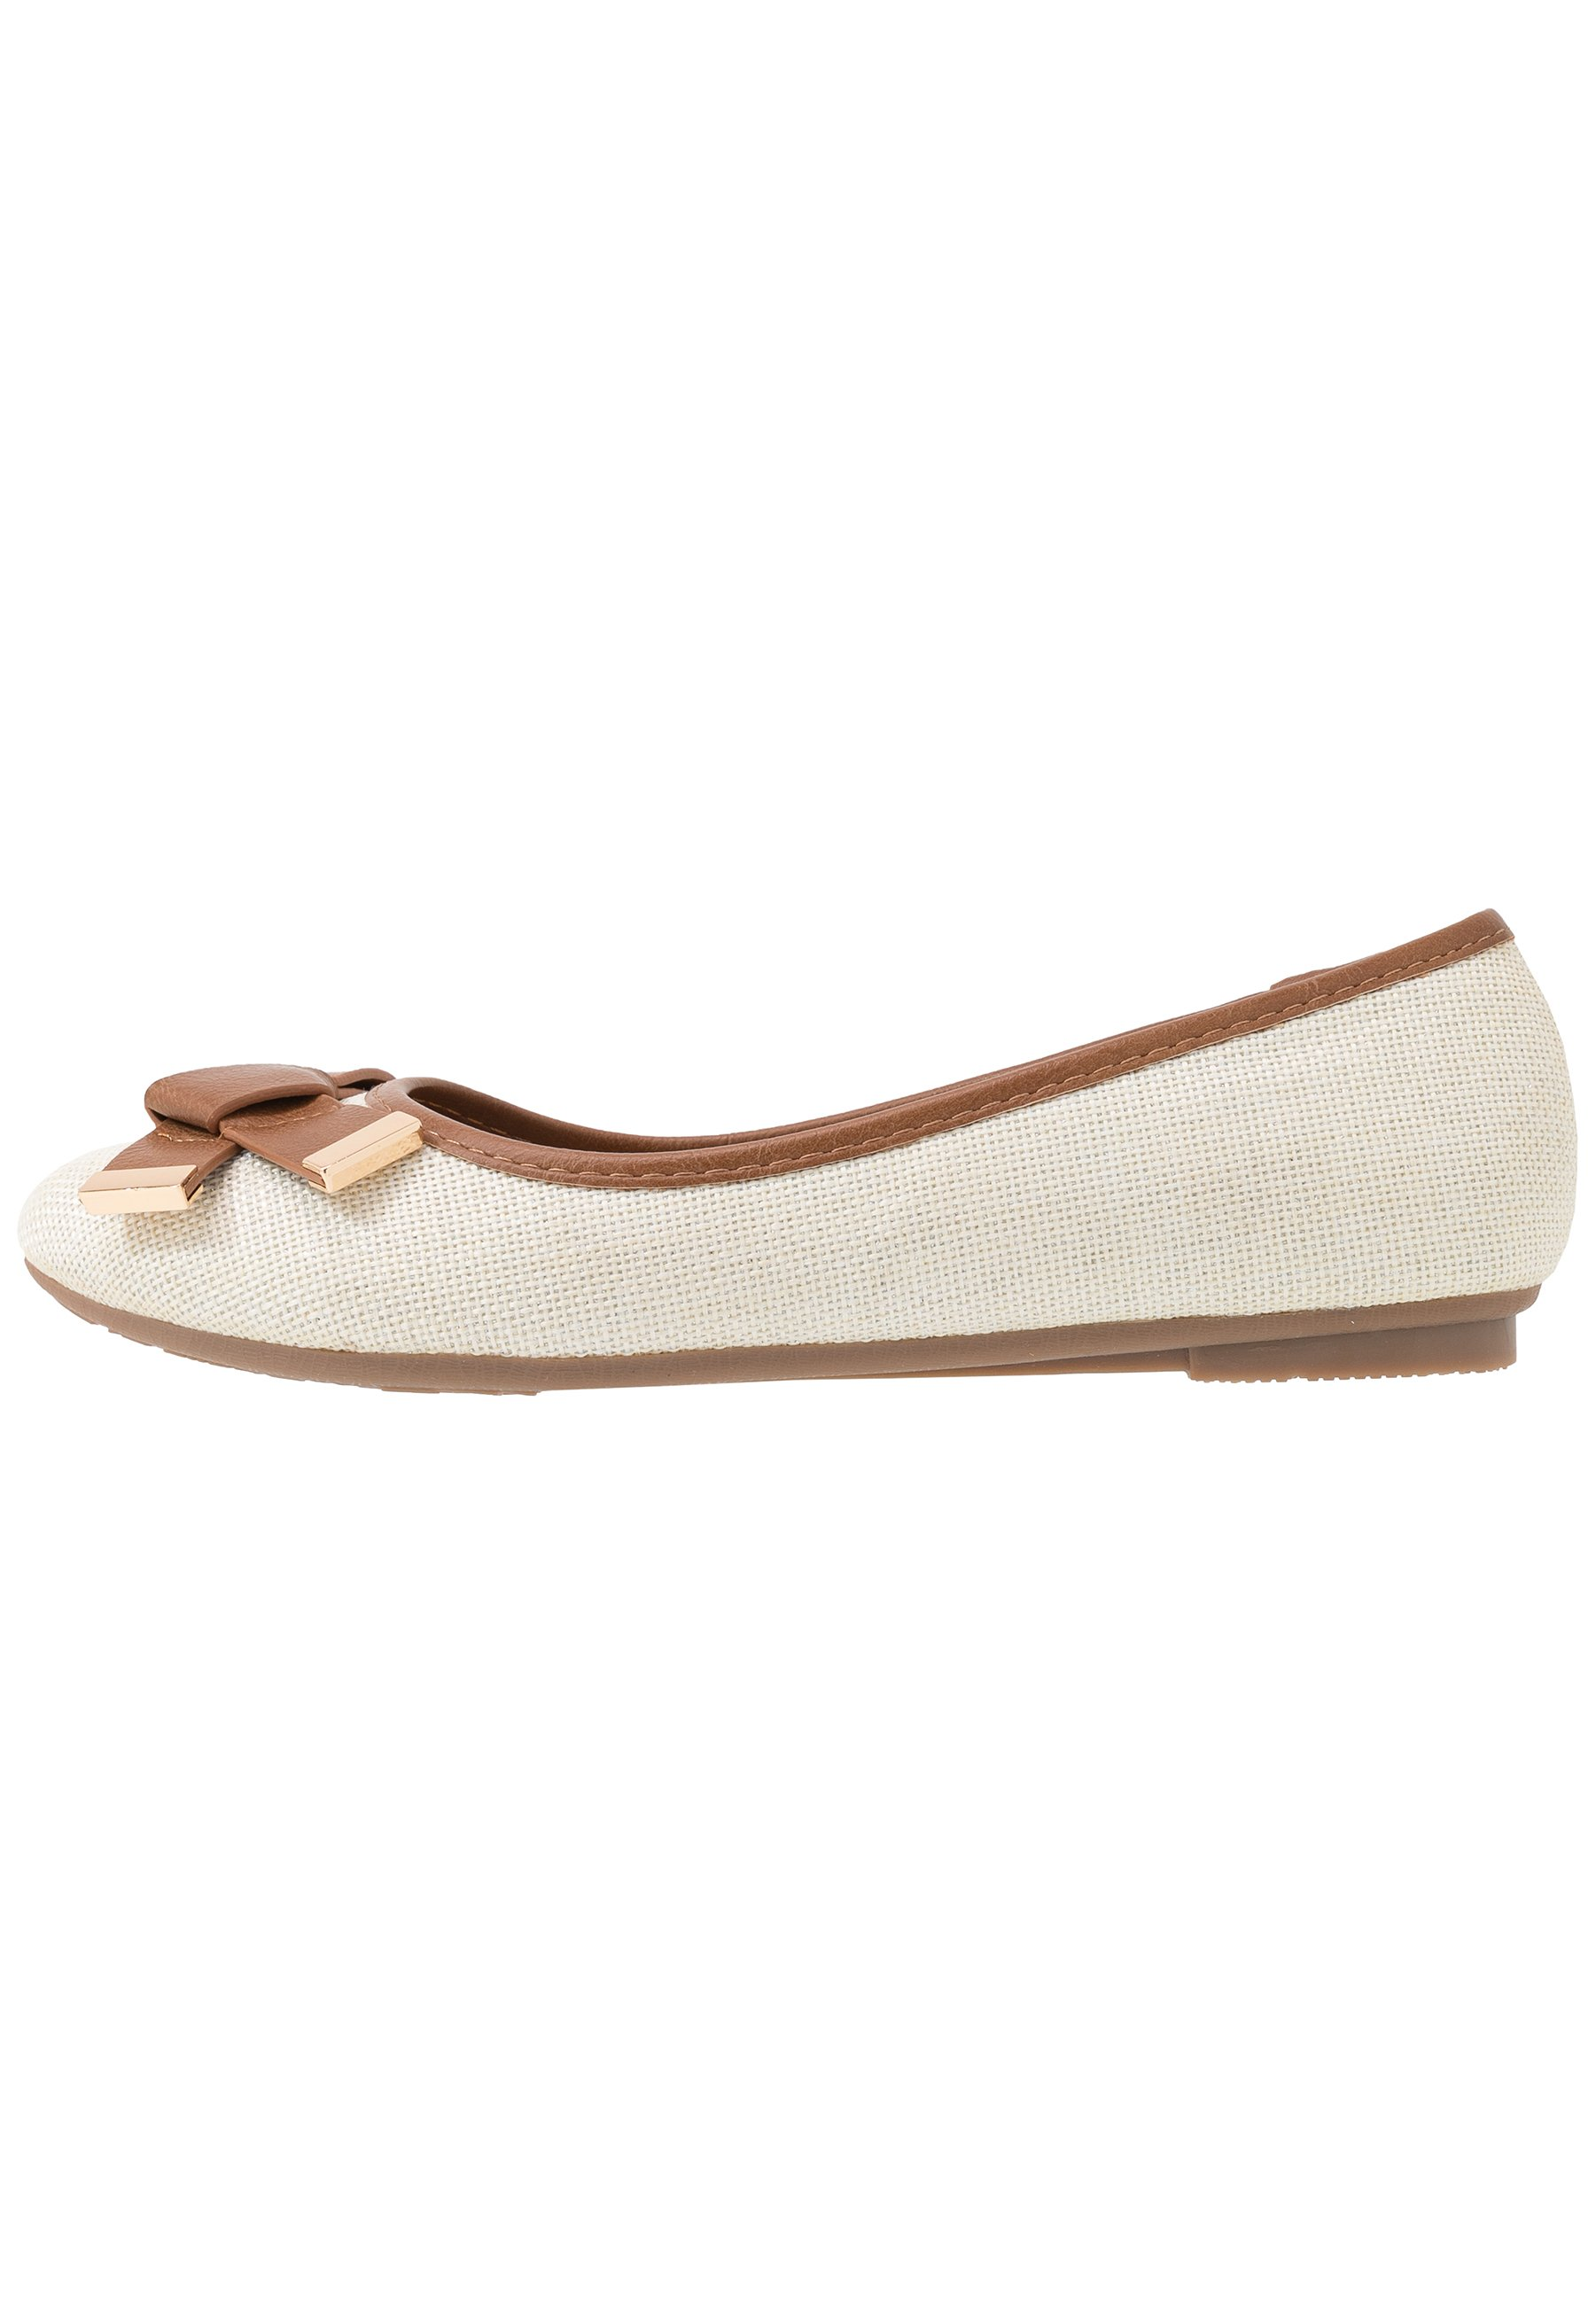 BRUNCHIE Ballerinaskor beige